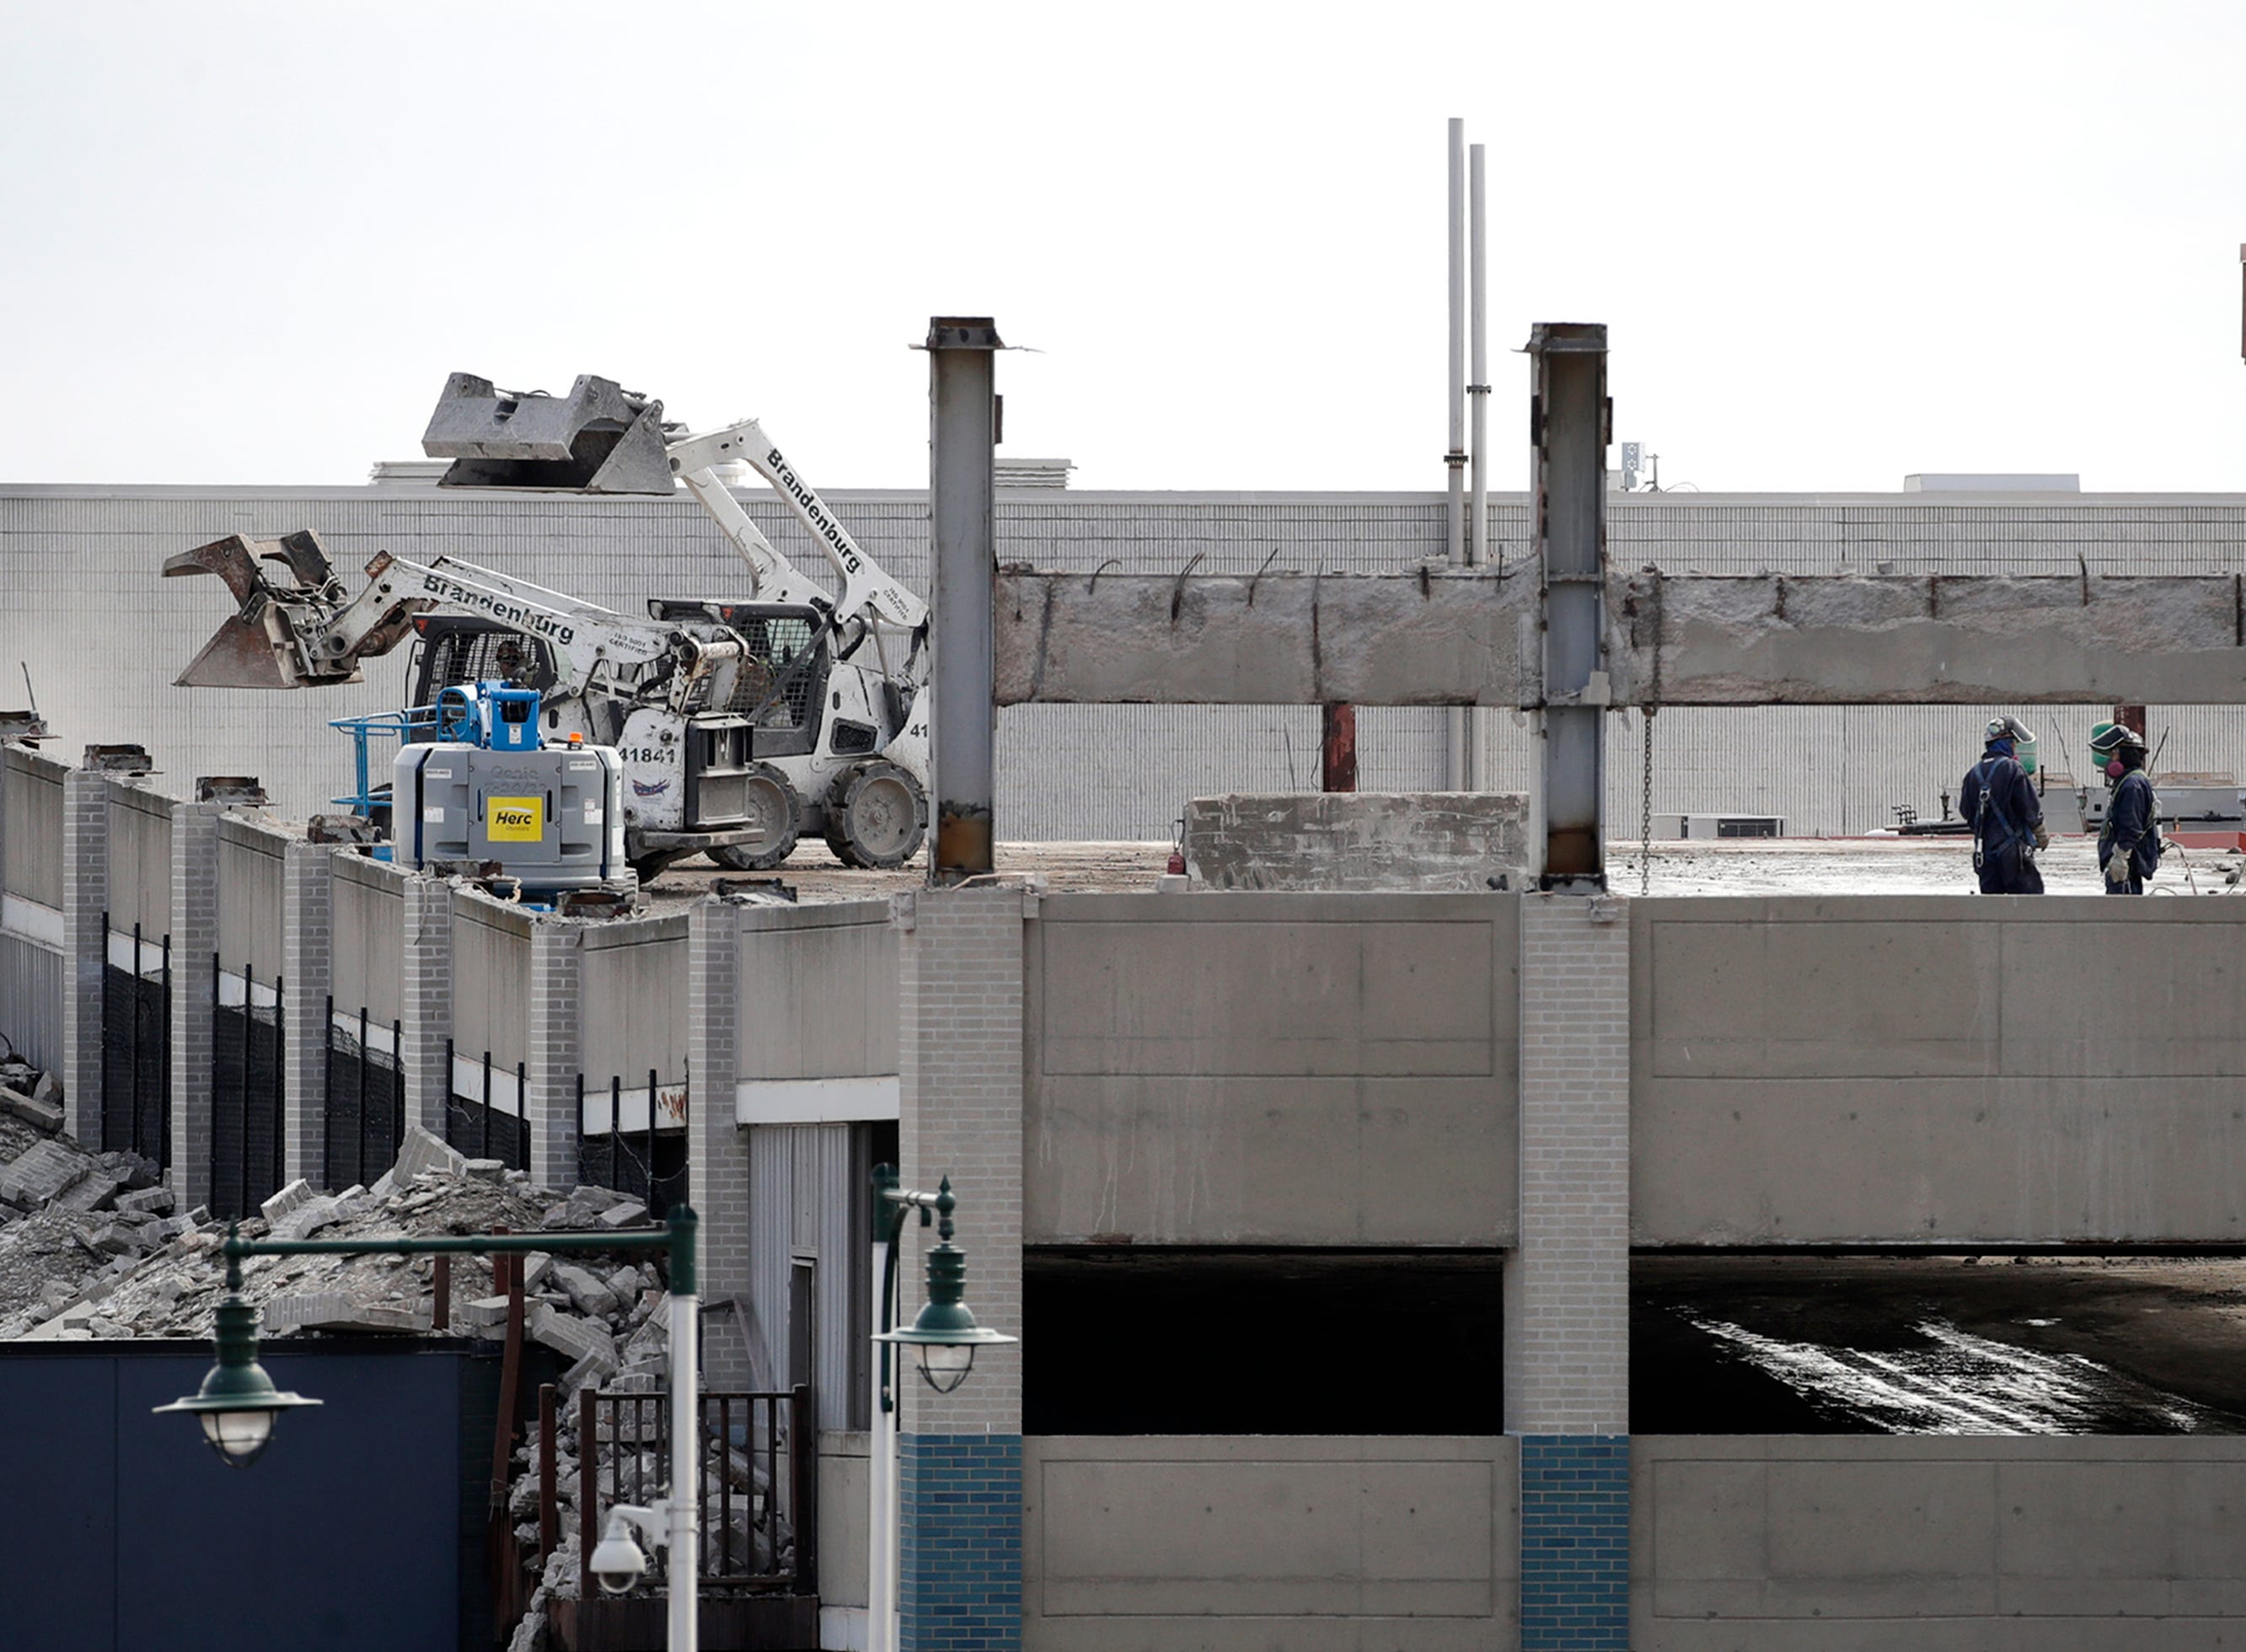 Crews work to tear down the the Blue Ramp near City Center in downtown Appleton Thursday, March 28, 2019, in Appleton, Wis. Danny Damiani/USA TODAY NETWORK-Wisconsin